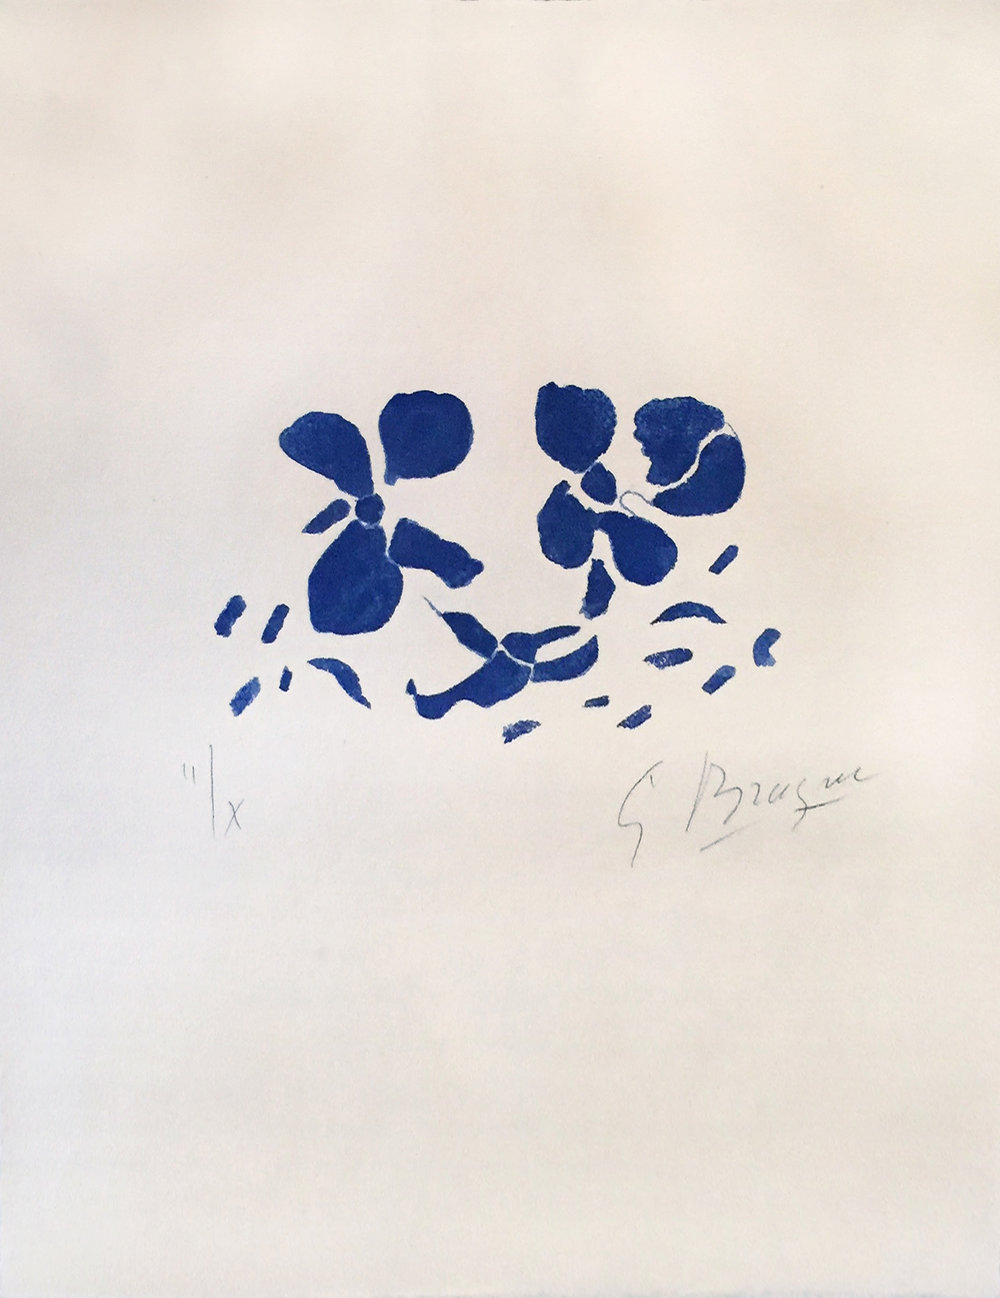 Fleurs Bleues (ed. 2 of 10), 1962, 14.25 x 18.5 inches, Color Woodcut on Japon nacre paper